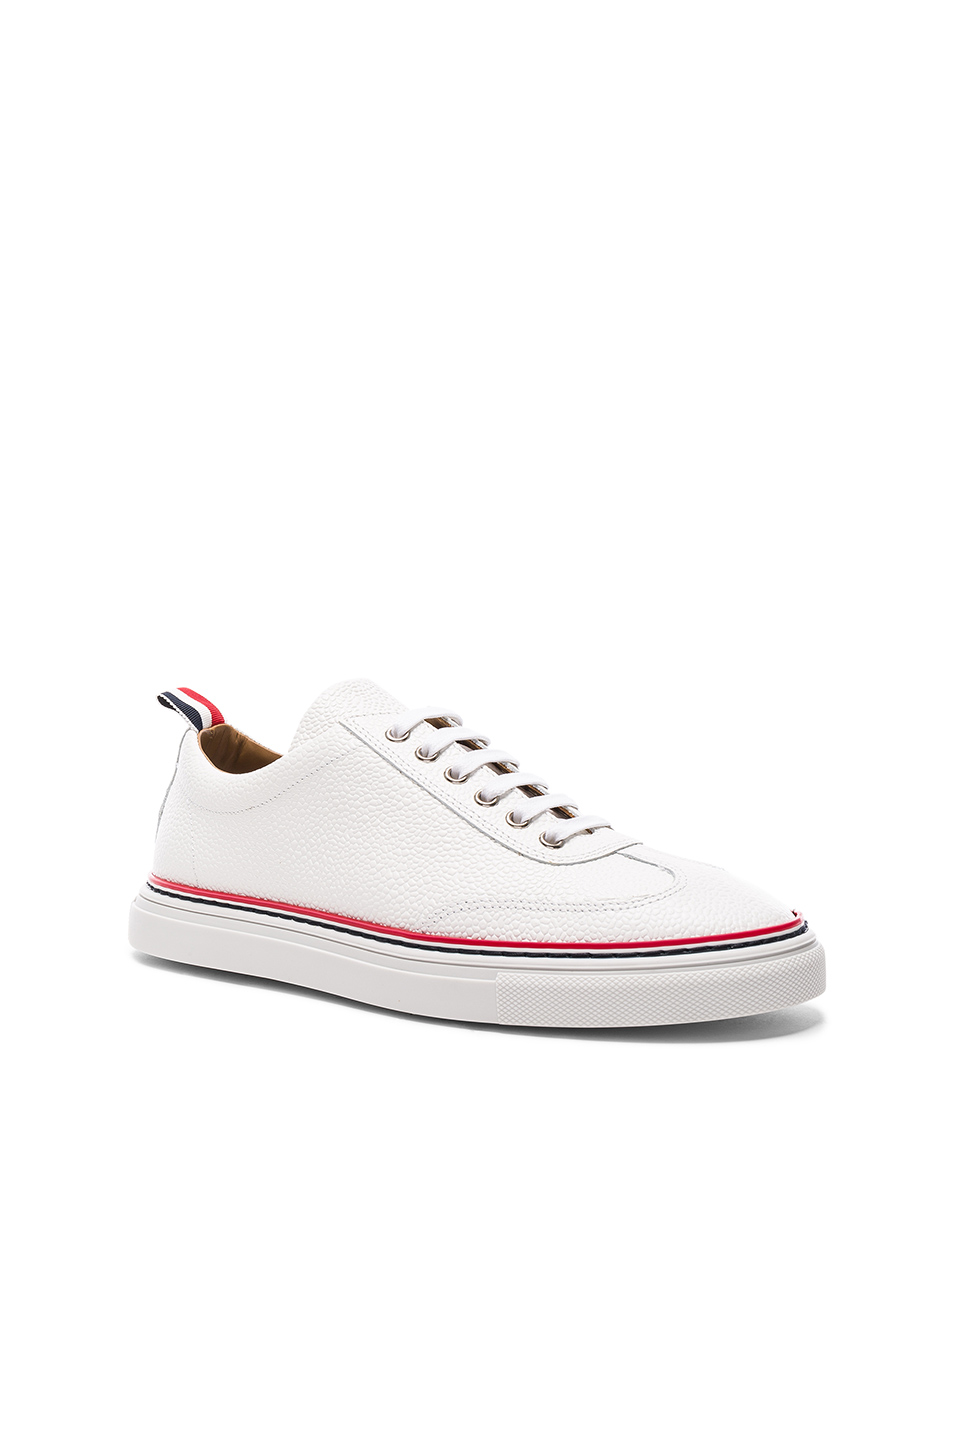 Thom Browne Pebble Grain Trainers in White